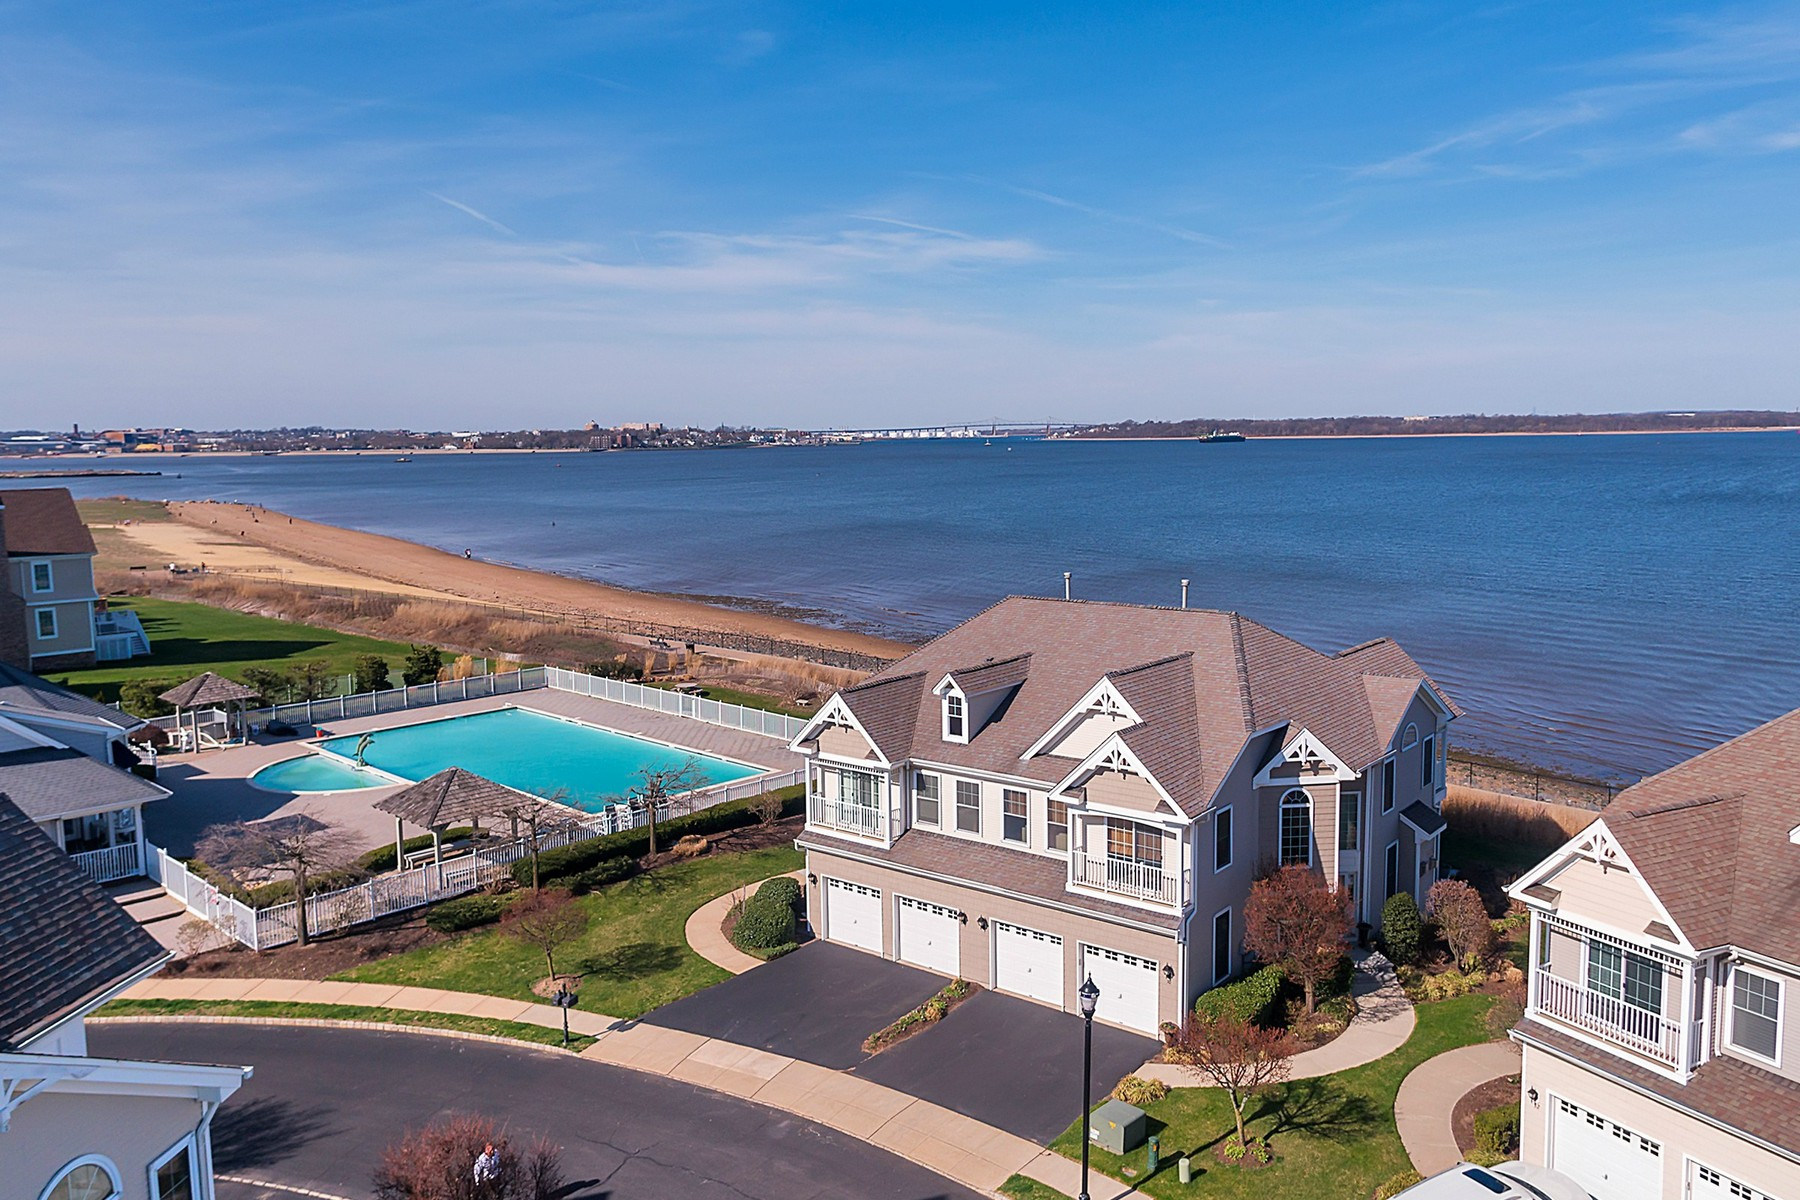 Single Family Home for Sale at Premier Waterfront in Lighthouse Bay 30 S Shore Drive South Amboy, New Jersey 08879 United States